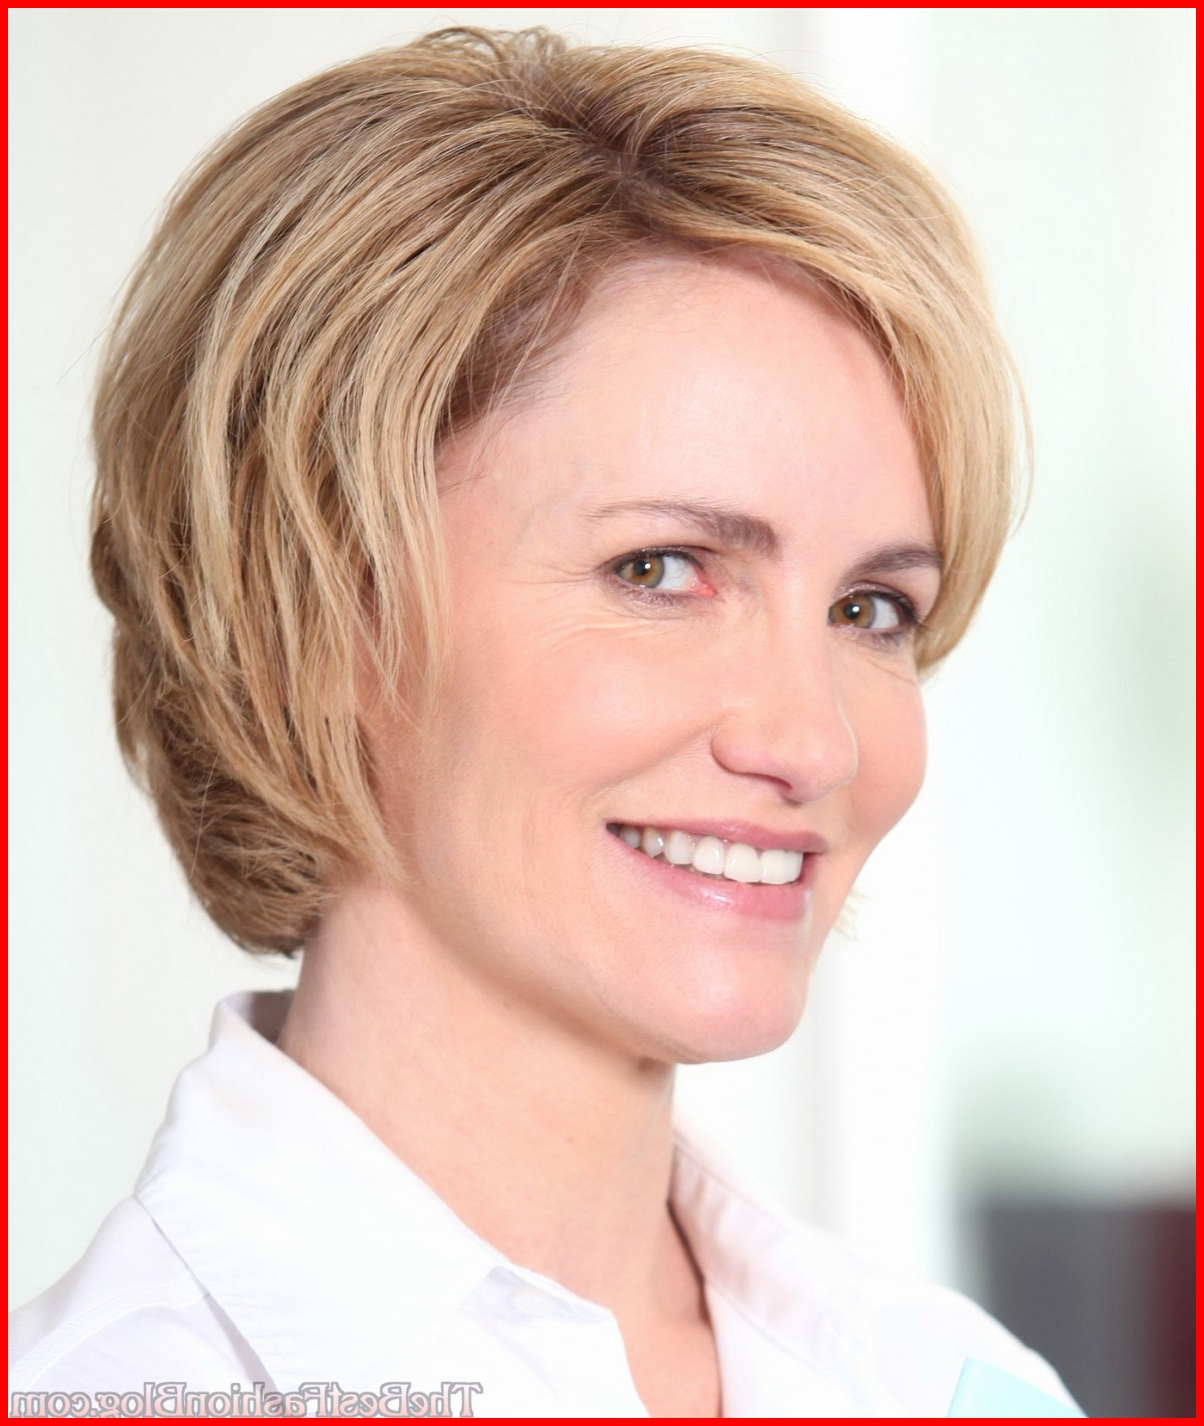 Hairstyles For Women 2015 158129 Bob Haircuts Women Over 50 For Short Haircuts For Women 50 And Over (View 11 of 25)